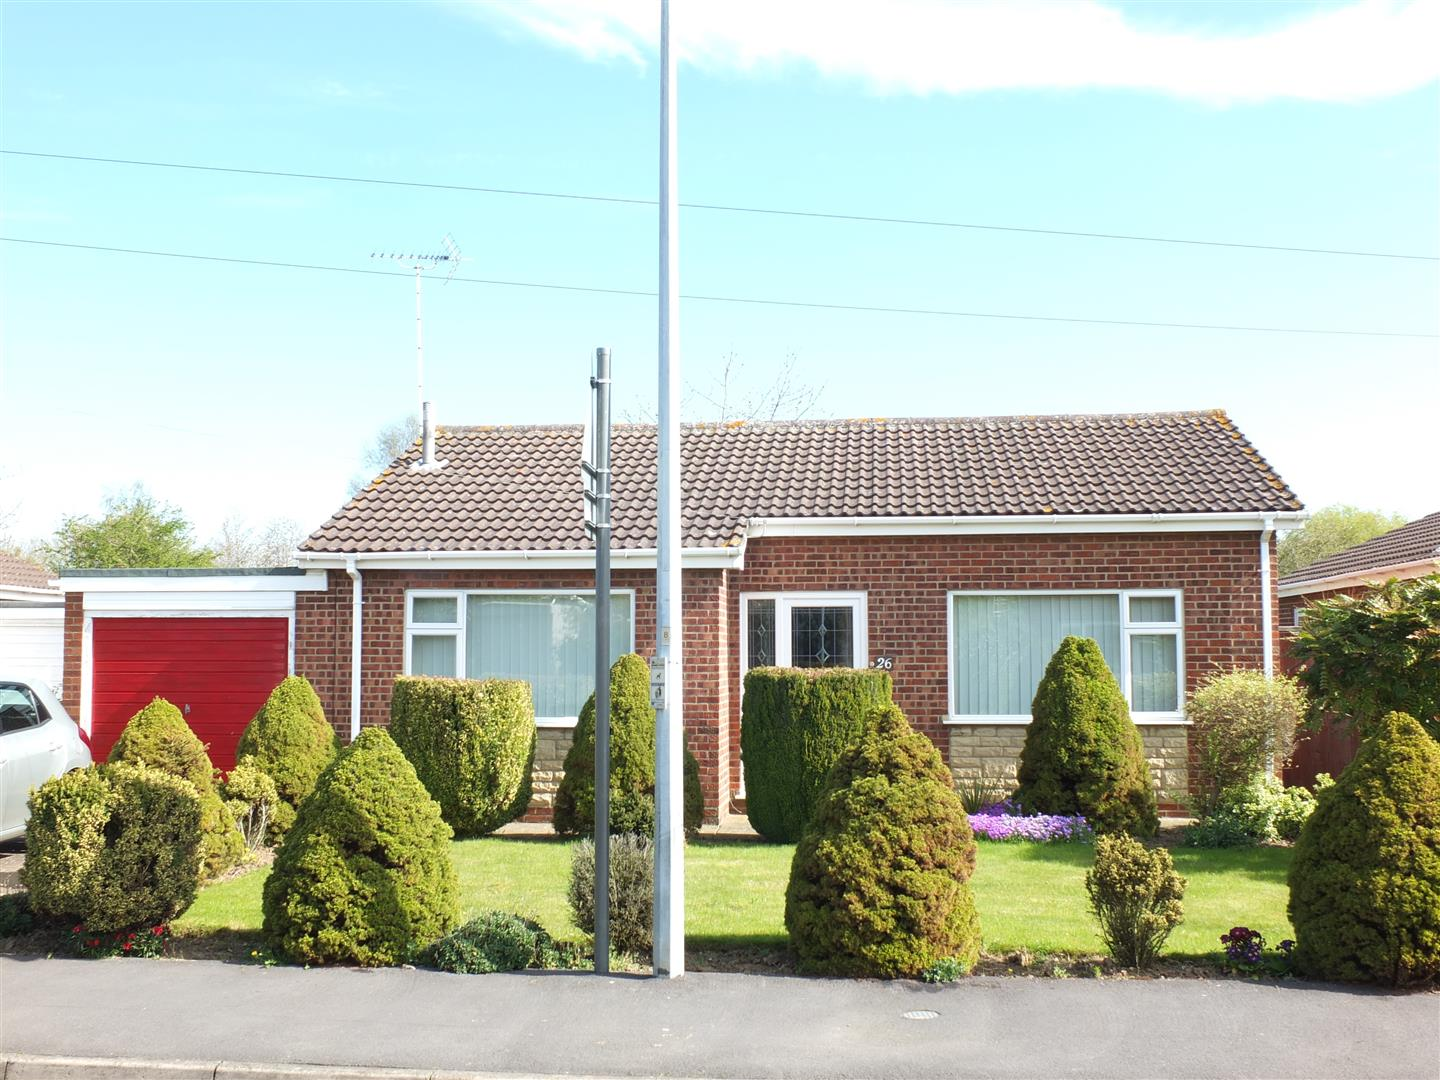 2 bed detached bungalow to rent in Long Sutton Spalding, PE12 9EP, PE12